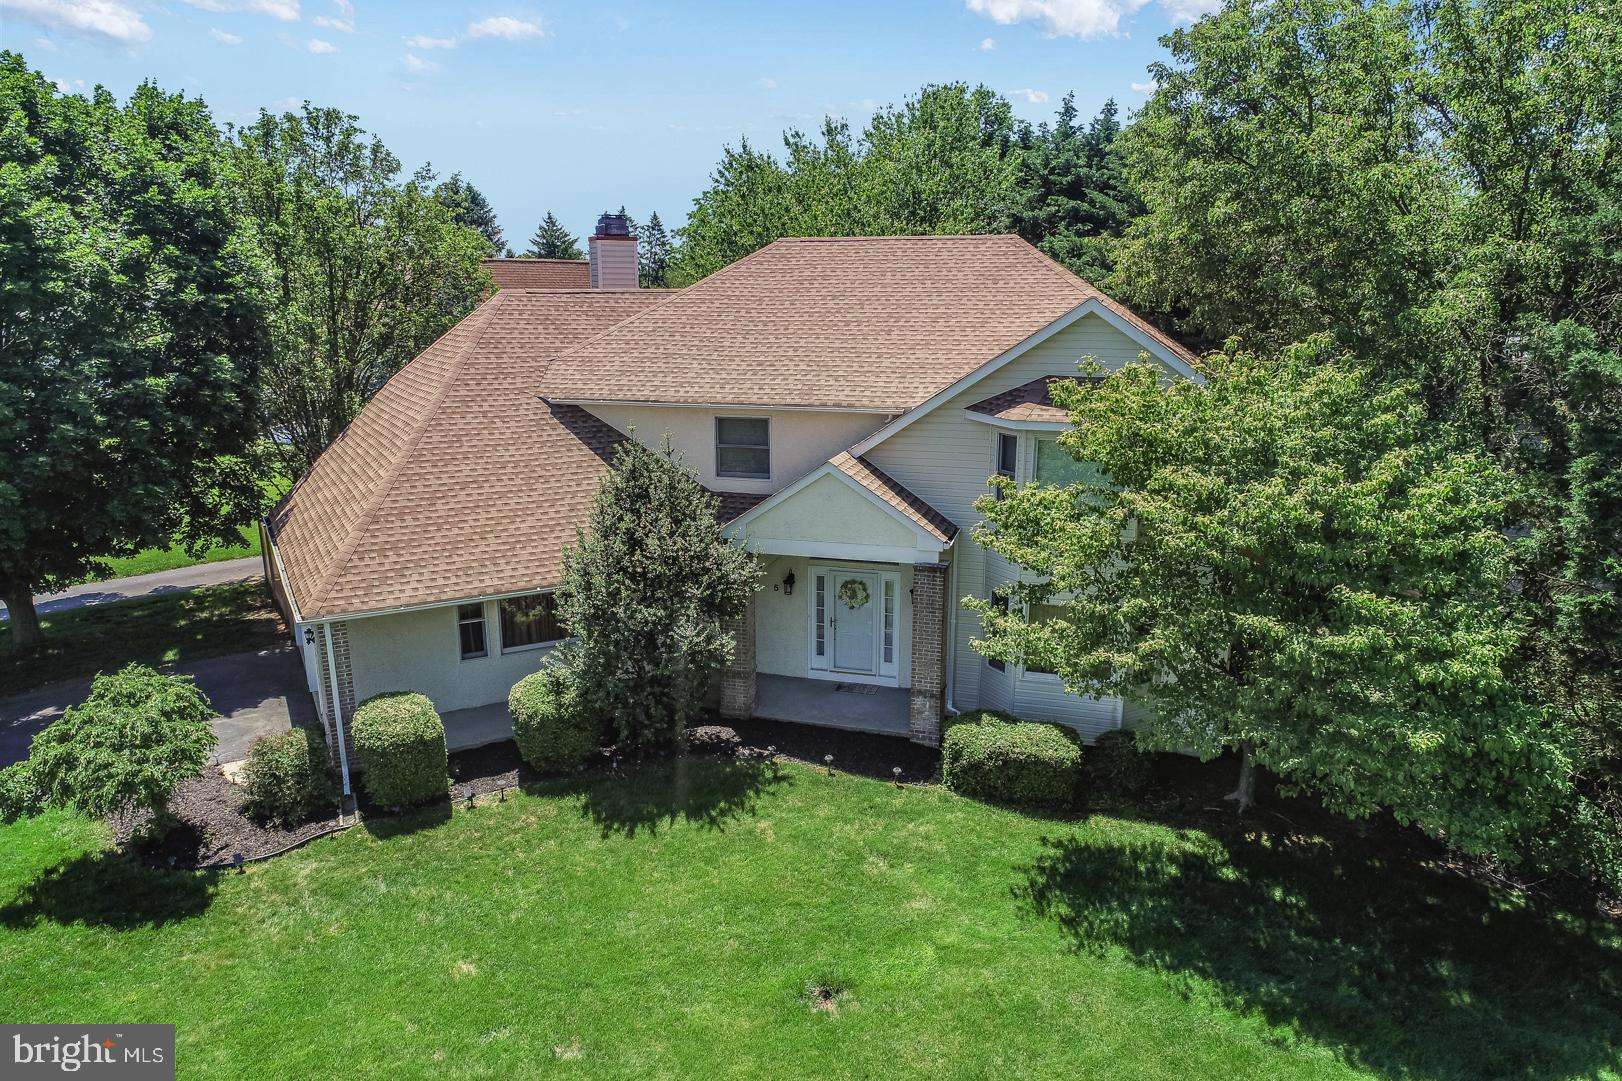 Welcome home to this 4 bedroom, 3/1 bath contemporary stunner! Walk up through the covered front porch and once inside you will be greeted by a 2-story foyer and a grand, turned staircase. You will notice beautiful hardwood flooring that extends throughout most of the main level. Immediately to your left are a coat closet and a discreetly placed powder room. To your right, enjoy the added functionality and space of a formal living room leading into a formal dining room. Or you can enter the home from the attached 2-car garage through the convenient combination mudroom/laundry room. From the foyer, you are led to the expansive open kitchen, which is a home cook's paradise, complete with stainless-steel appliances, granite countertops, a tiled backsplash, ample cabinet space, and a uniquely shaped center island with breakfast bar and pendant lighting. The kitchen also features a breakfast nook complete with a sunny bay window and in the adjoining family room, you can enjoy the warmth from a corner wood-burning fireplace. Sliders from the family room/breakfast nook lead out to the spacious rear deck with built-in seating where you can enjoy a fully fenced in backyard! The front and side yards have also been beautifully landscaped. On the second floor, you will find a large master suite that includes an oversized office area and a full en suite bath with a jetted tub, walk-in shower, double vanity, and an enclosed toilet with a skylight. Three more bedrooms with large closets and a full bath with tub, shower and double vanity complete the upper level. Downstairs provides even more of an abundance of space in the fully finished basement with wall-to-wall carpeting, a tiled fireplace, a full bath with a stall shower, and a large utility room. This home offers endless possibilities and is conveniently close to shopping, schools, I-95, and everything the Brandywine Hundred has to offer, schedule your tour today!